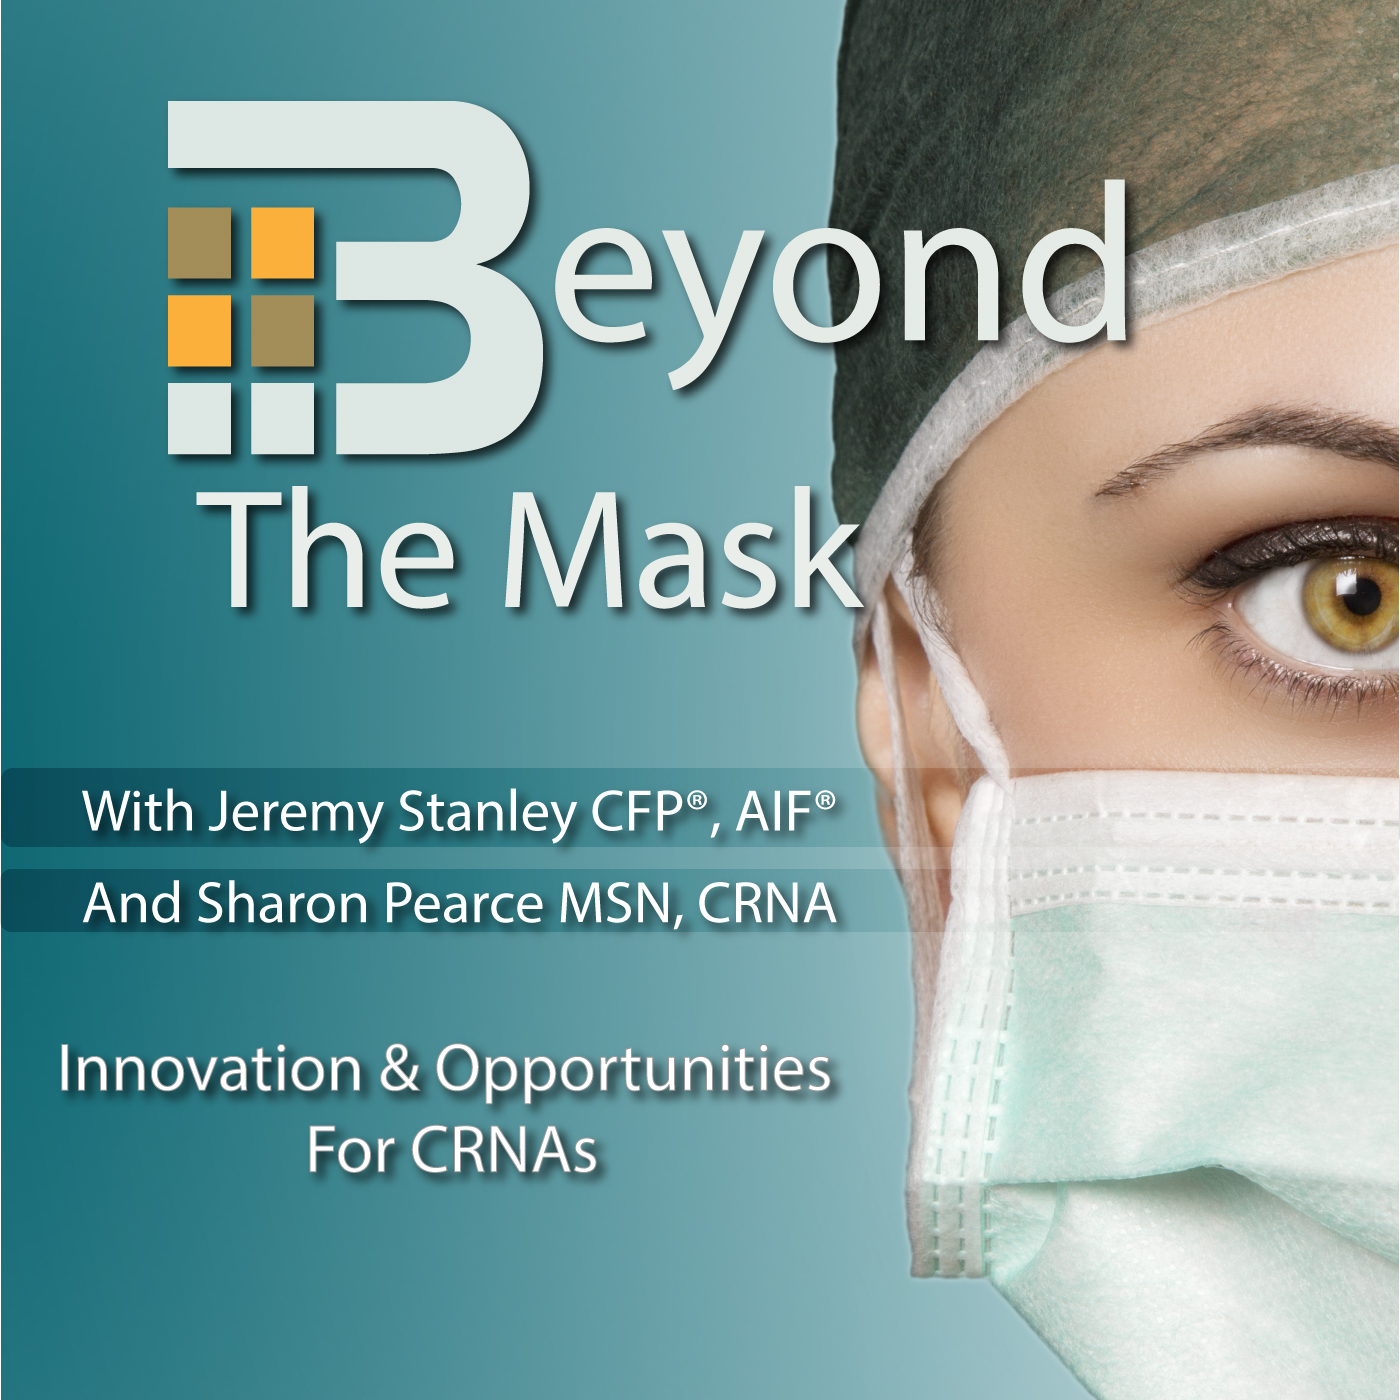 Beyond-The-Mask-LOGO